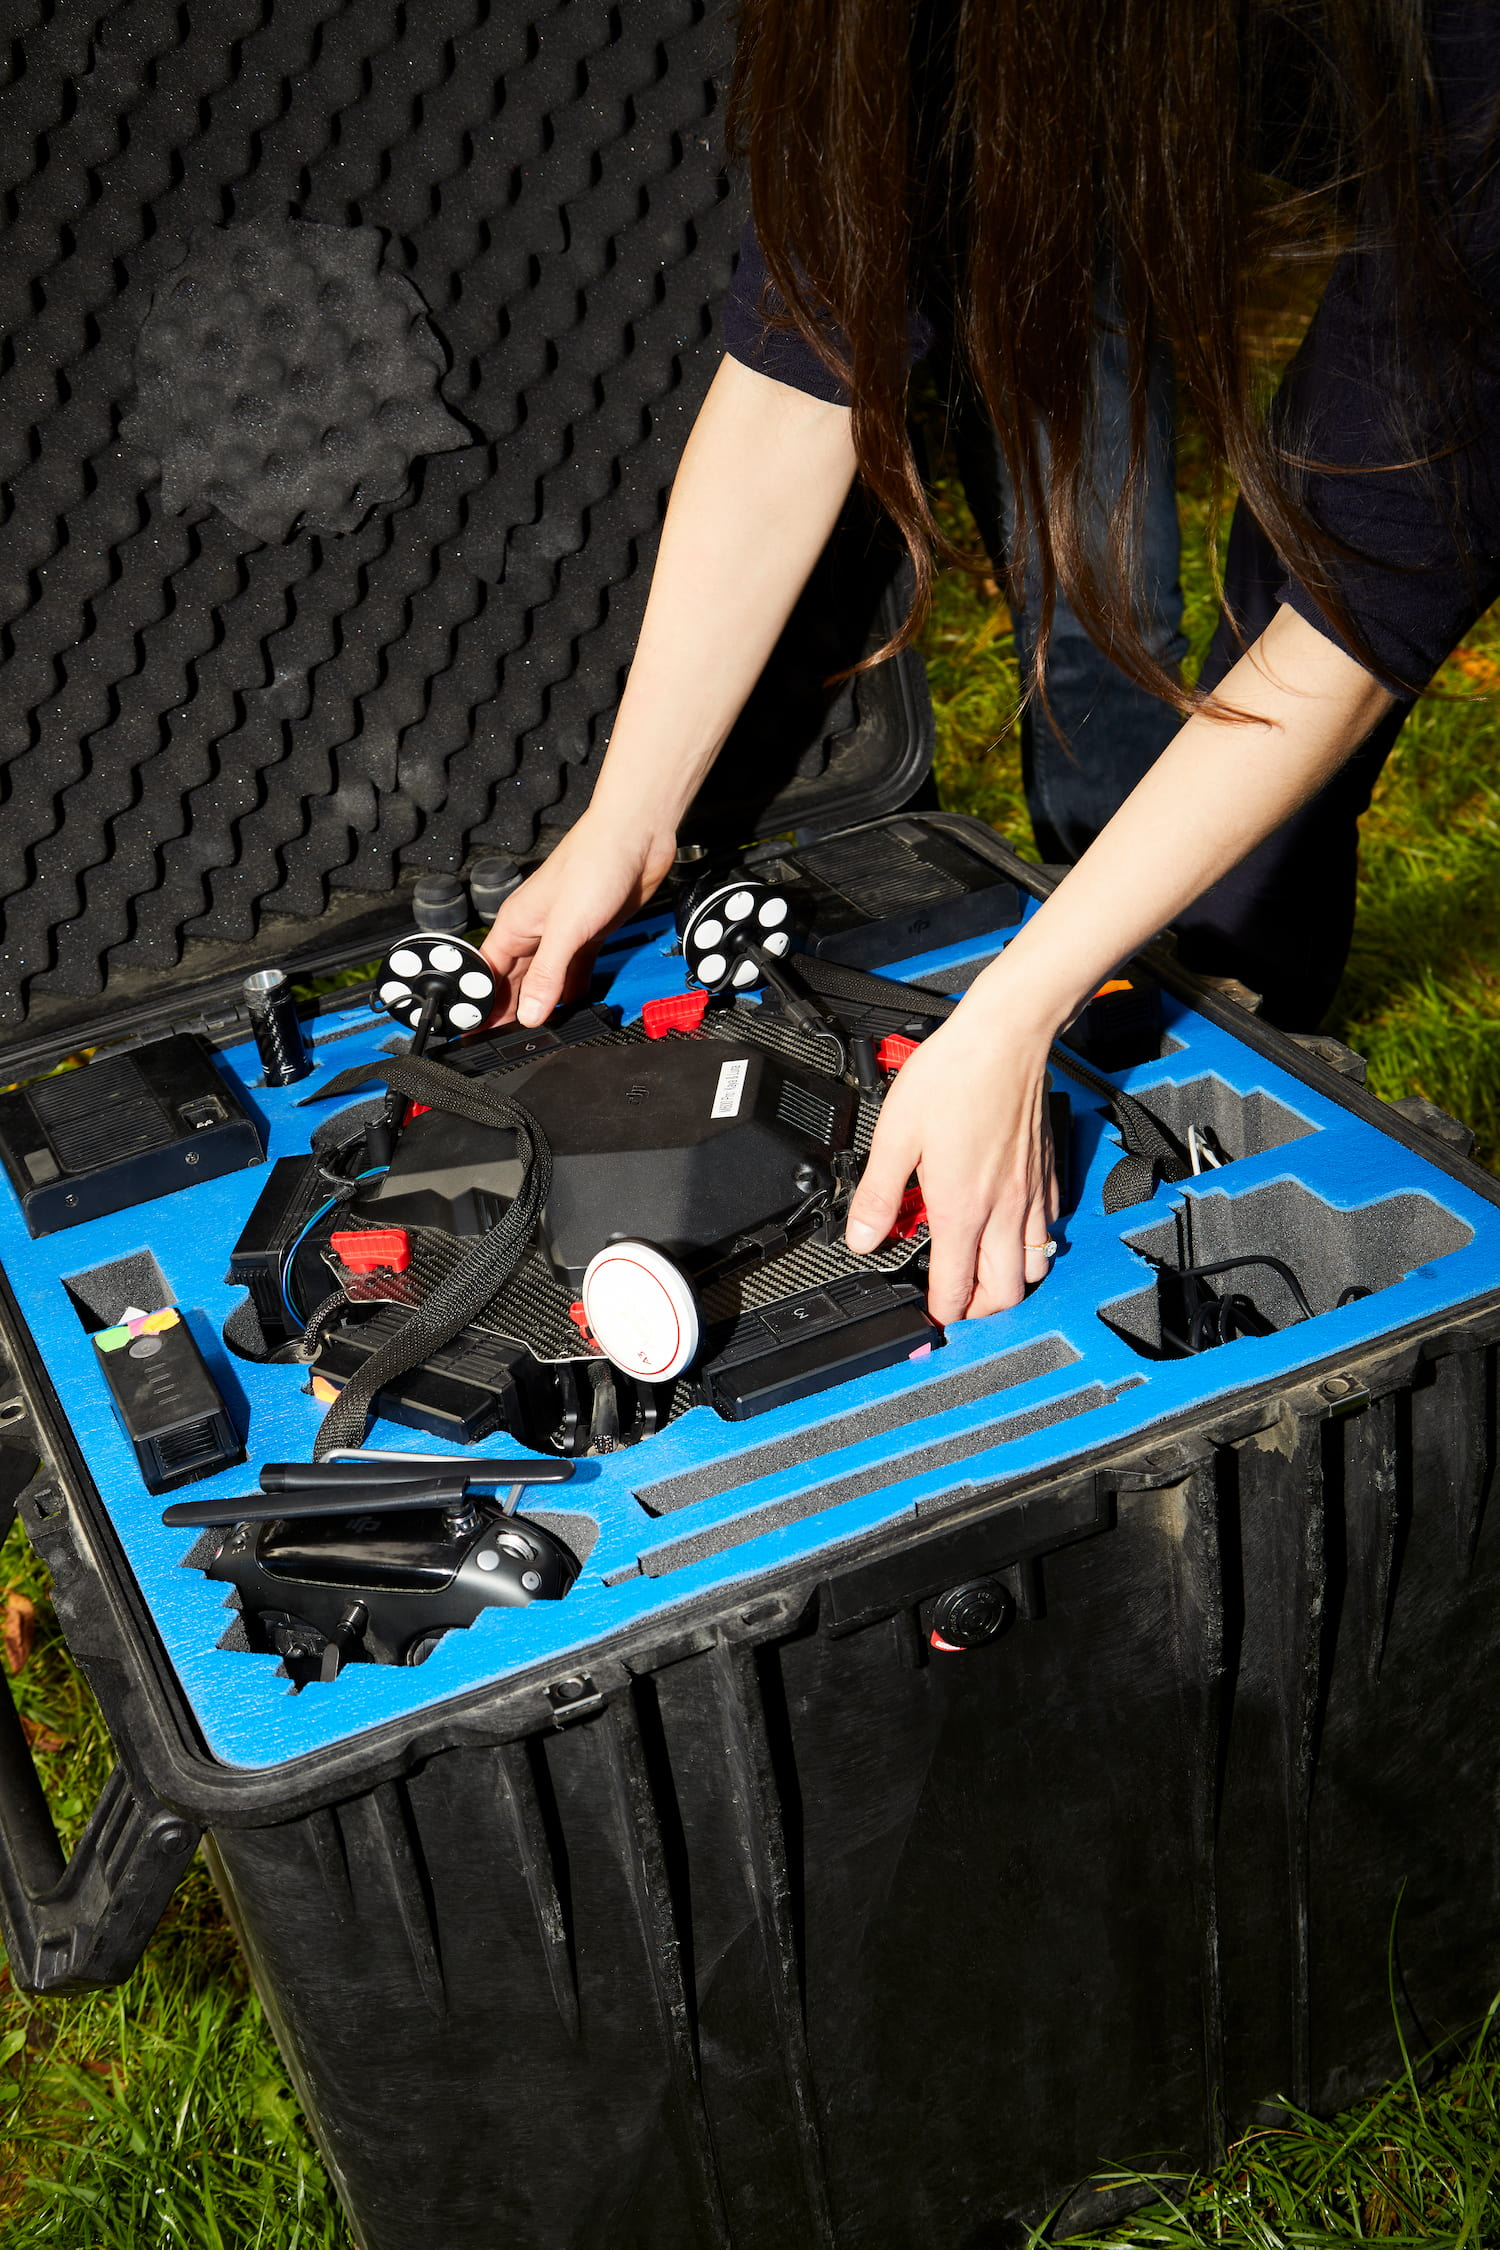 A close-up shot of a person taking a drone out of its case.